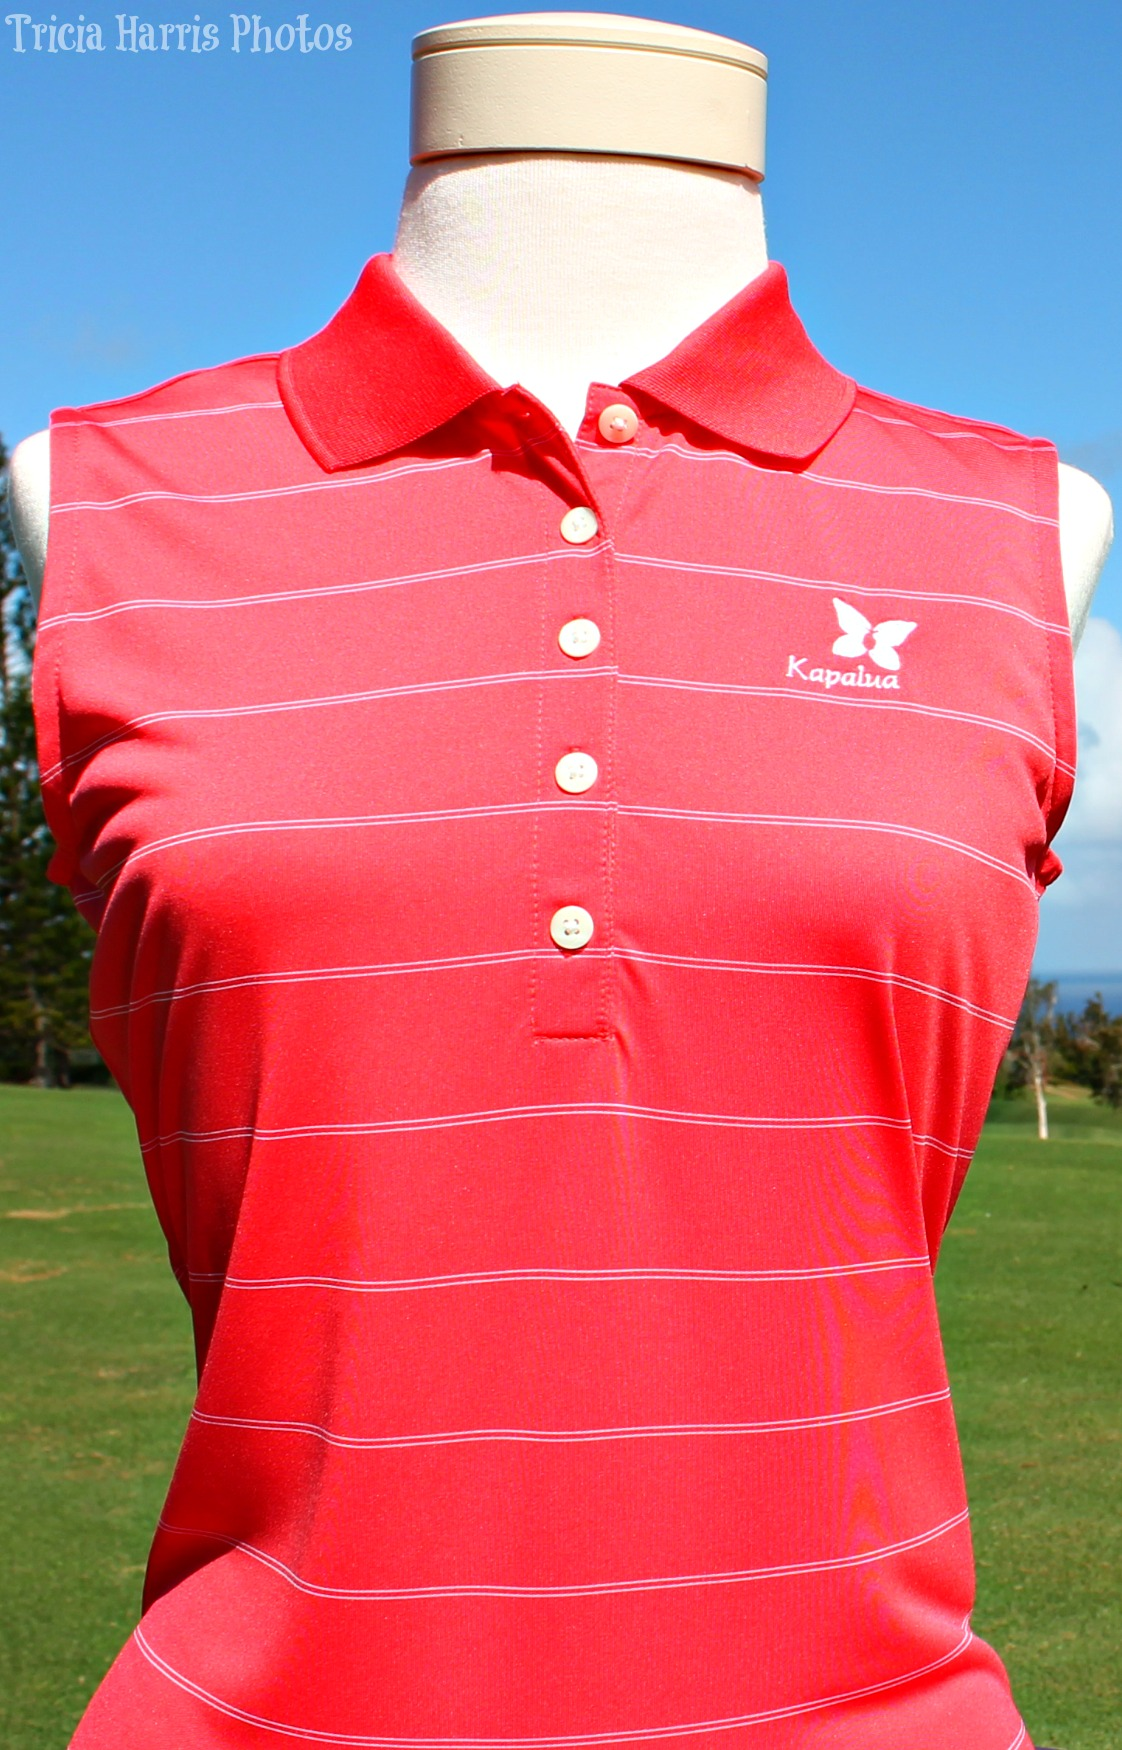 kapalua women s clothing kapalua golf women s clothing